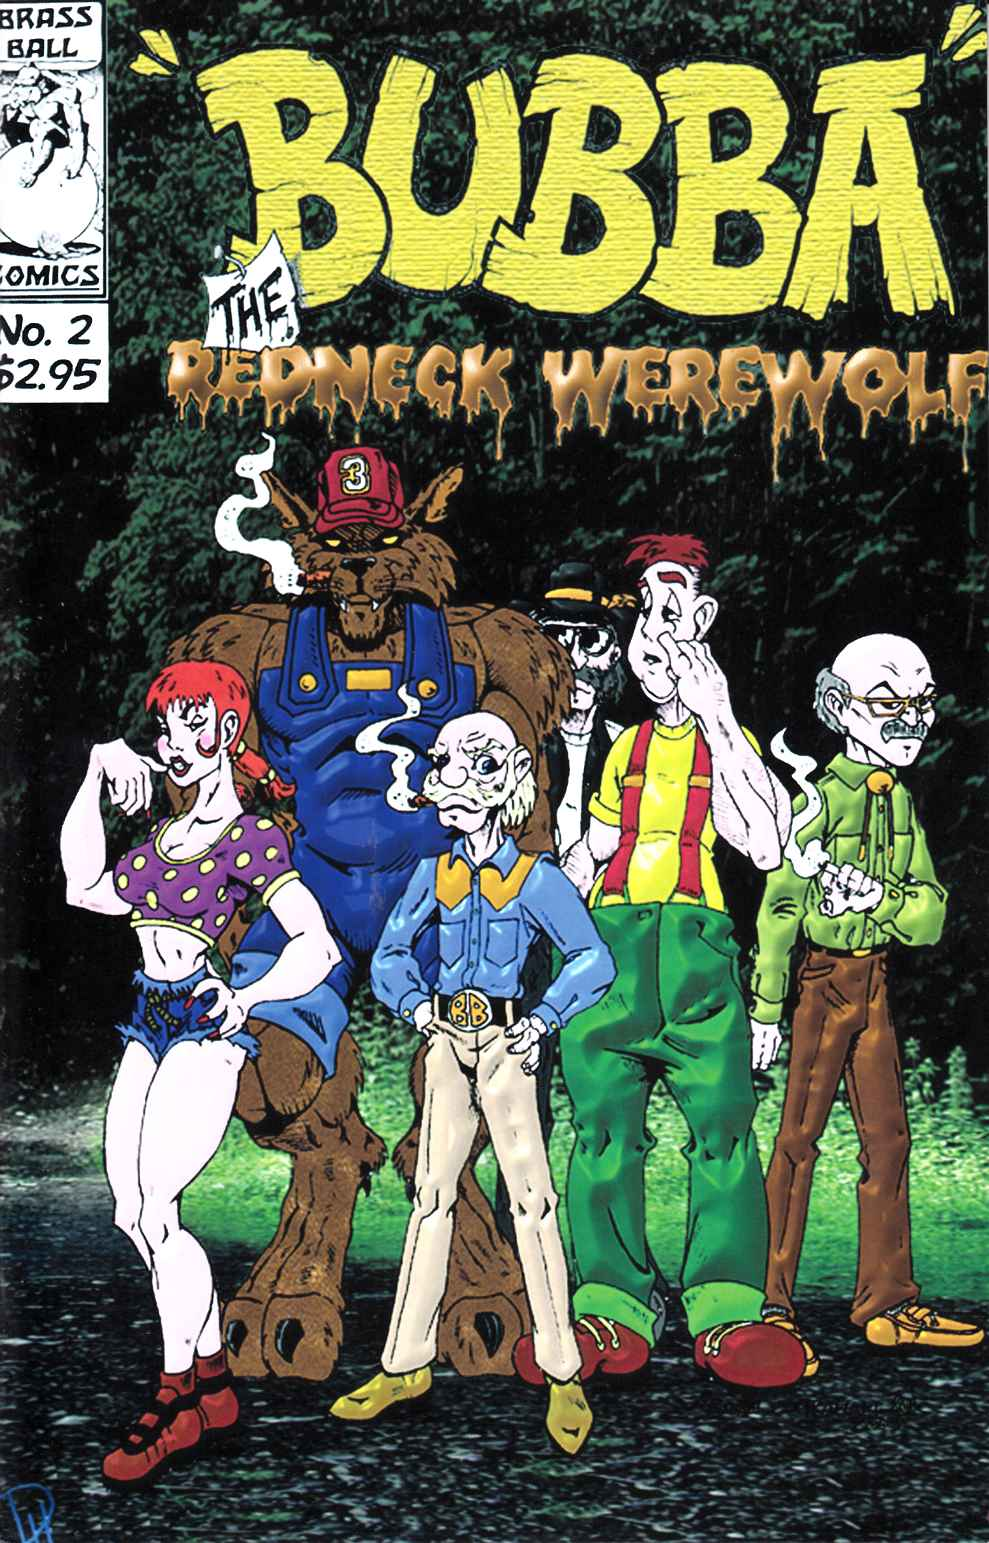 Bubba the Redneck Werewolf #2 Near Mint (9.4) [Brass Ball Comic] THUMBNAIL